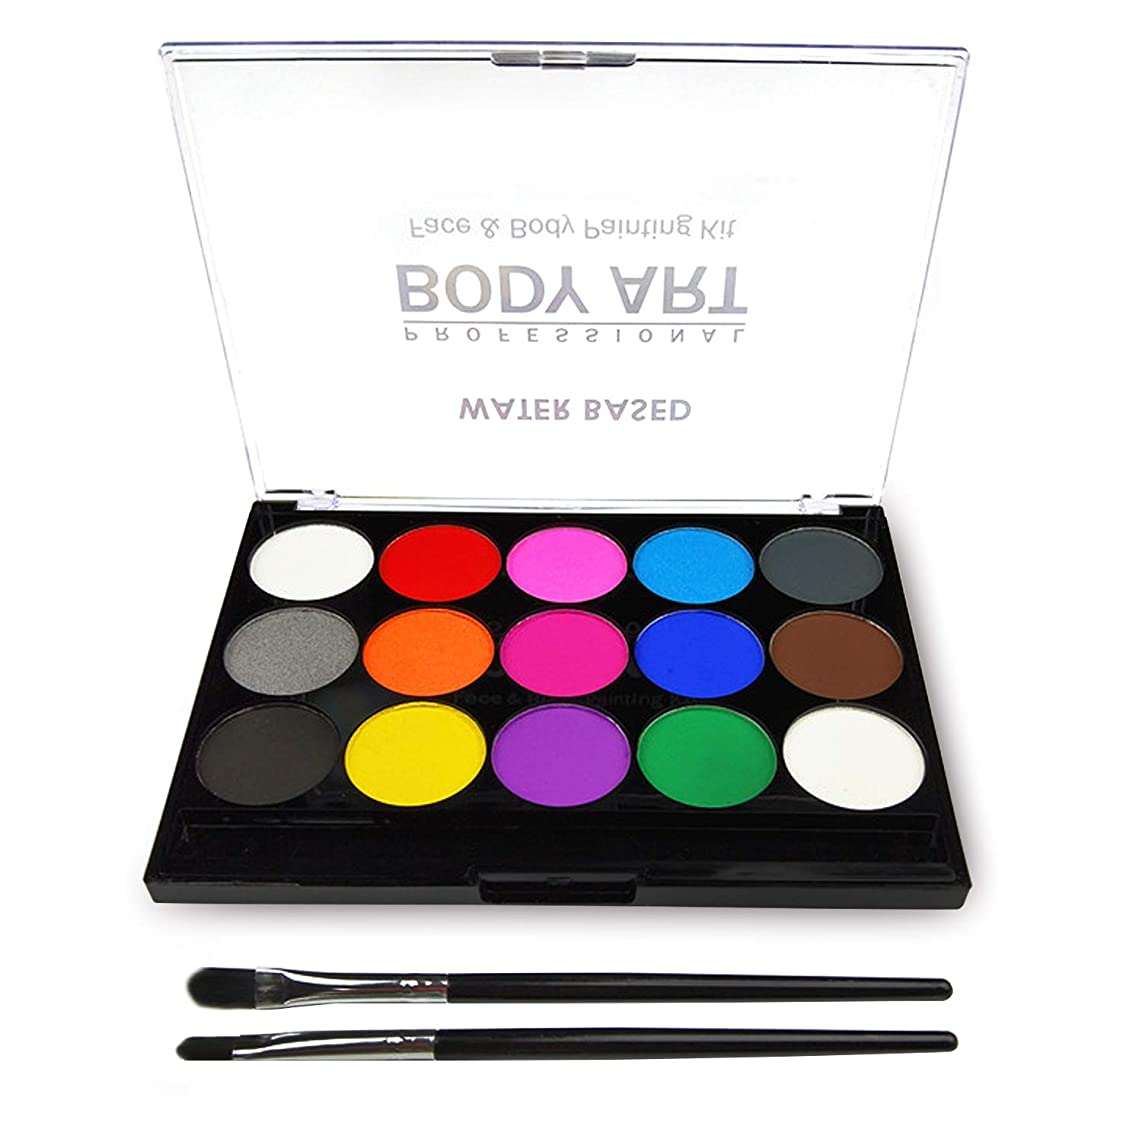 Face Paint Kit for Kids, Professional Quality Face & Body Paint, Hypoallergenic Safe & Non-Toxic, Easy to Painting and Washing, Ideal for Halloween Party Face Painting, 15 Colors with Two Brush